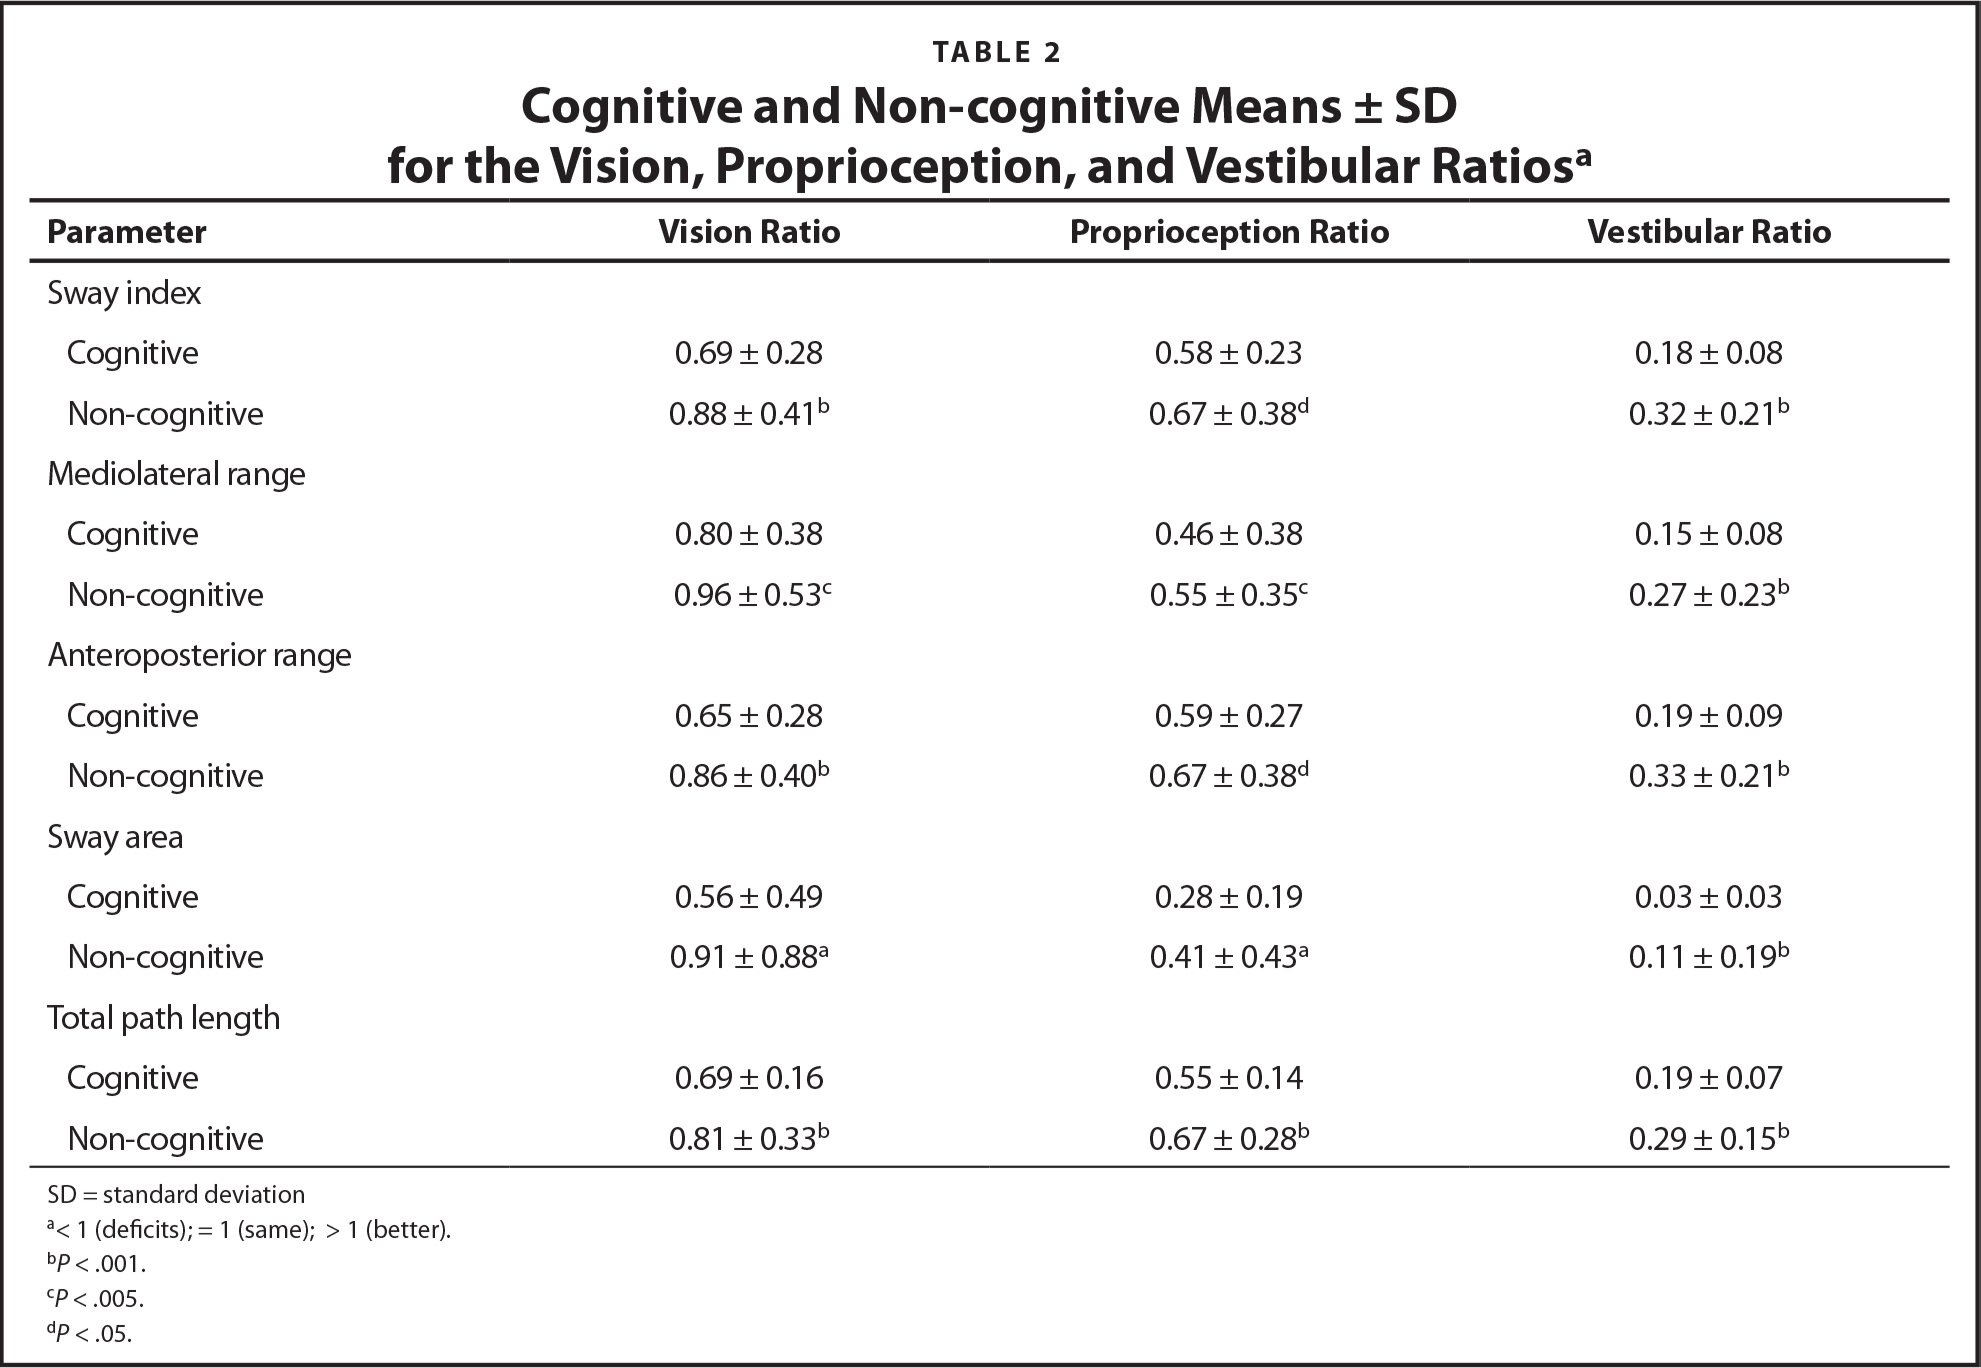 Cognitive and Non-cognitive Means ± SD for the Vision, Proprioception, and Vestibular Ratiosa